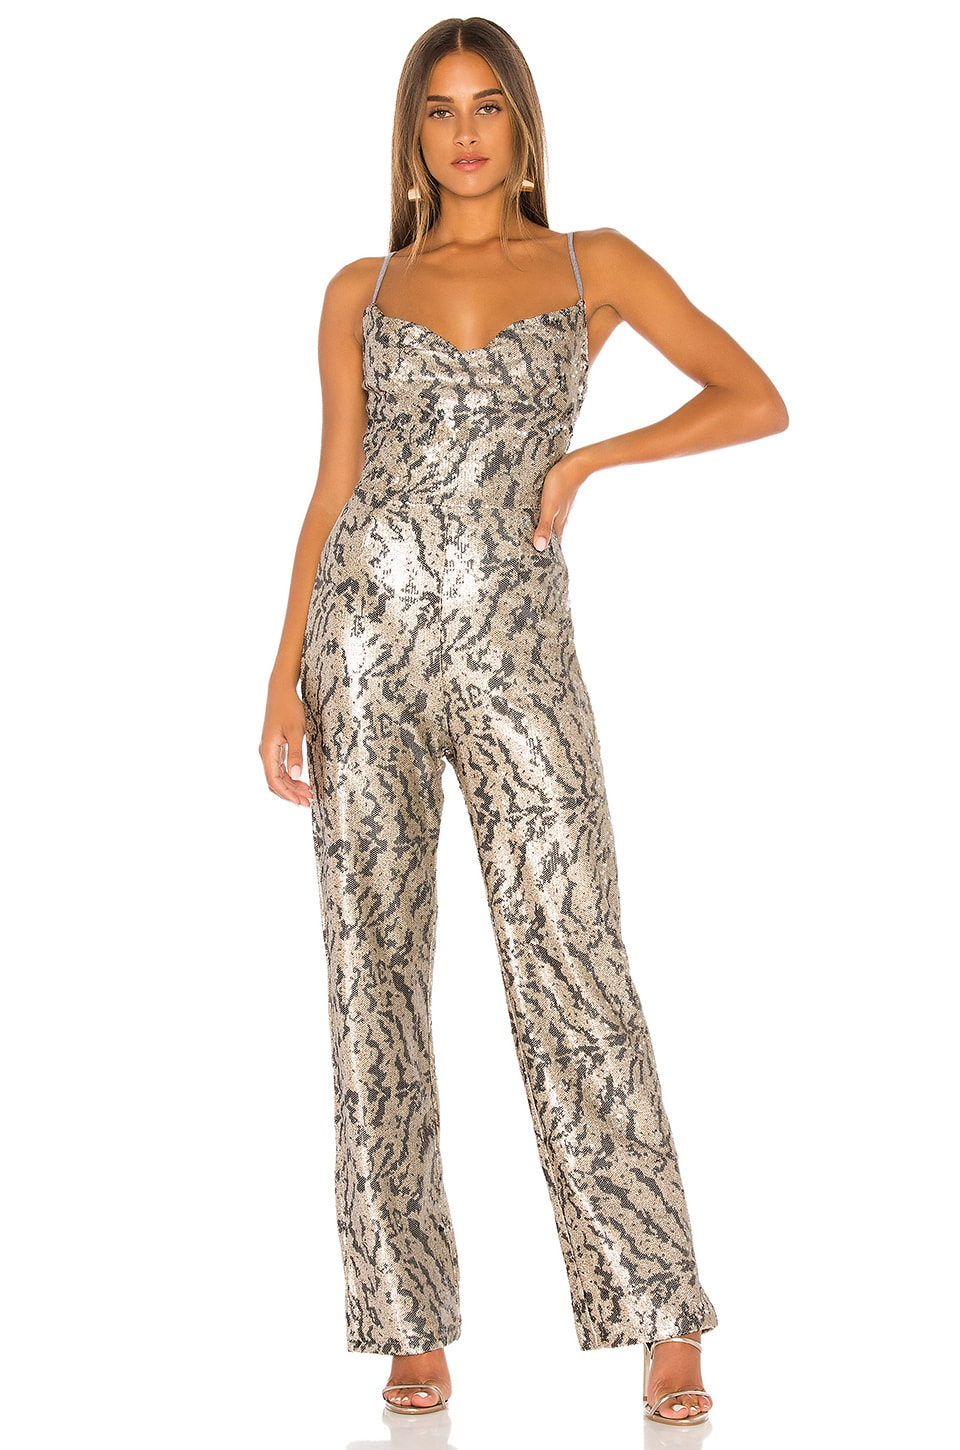 KENDALL + KYLIE Studio 54 Jumpsuit in Tiger Sequin